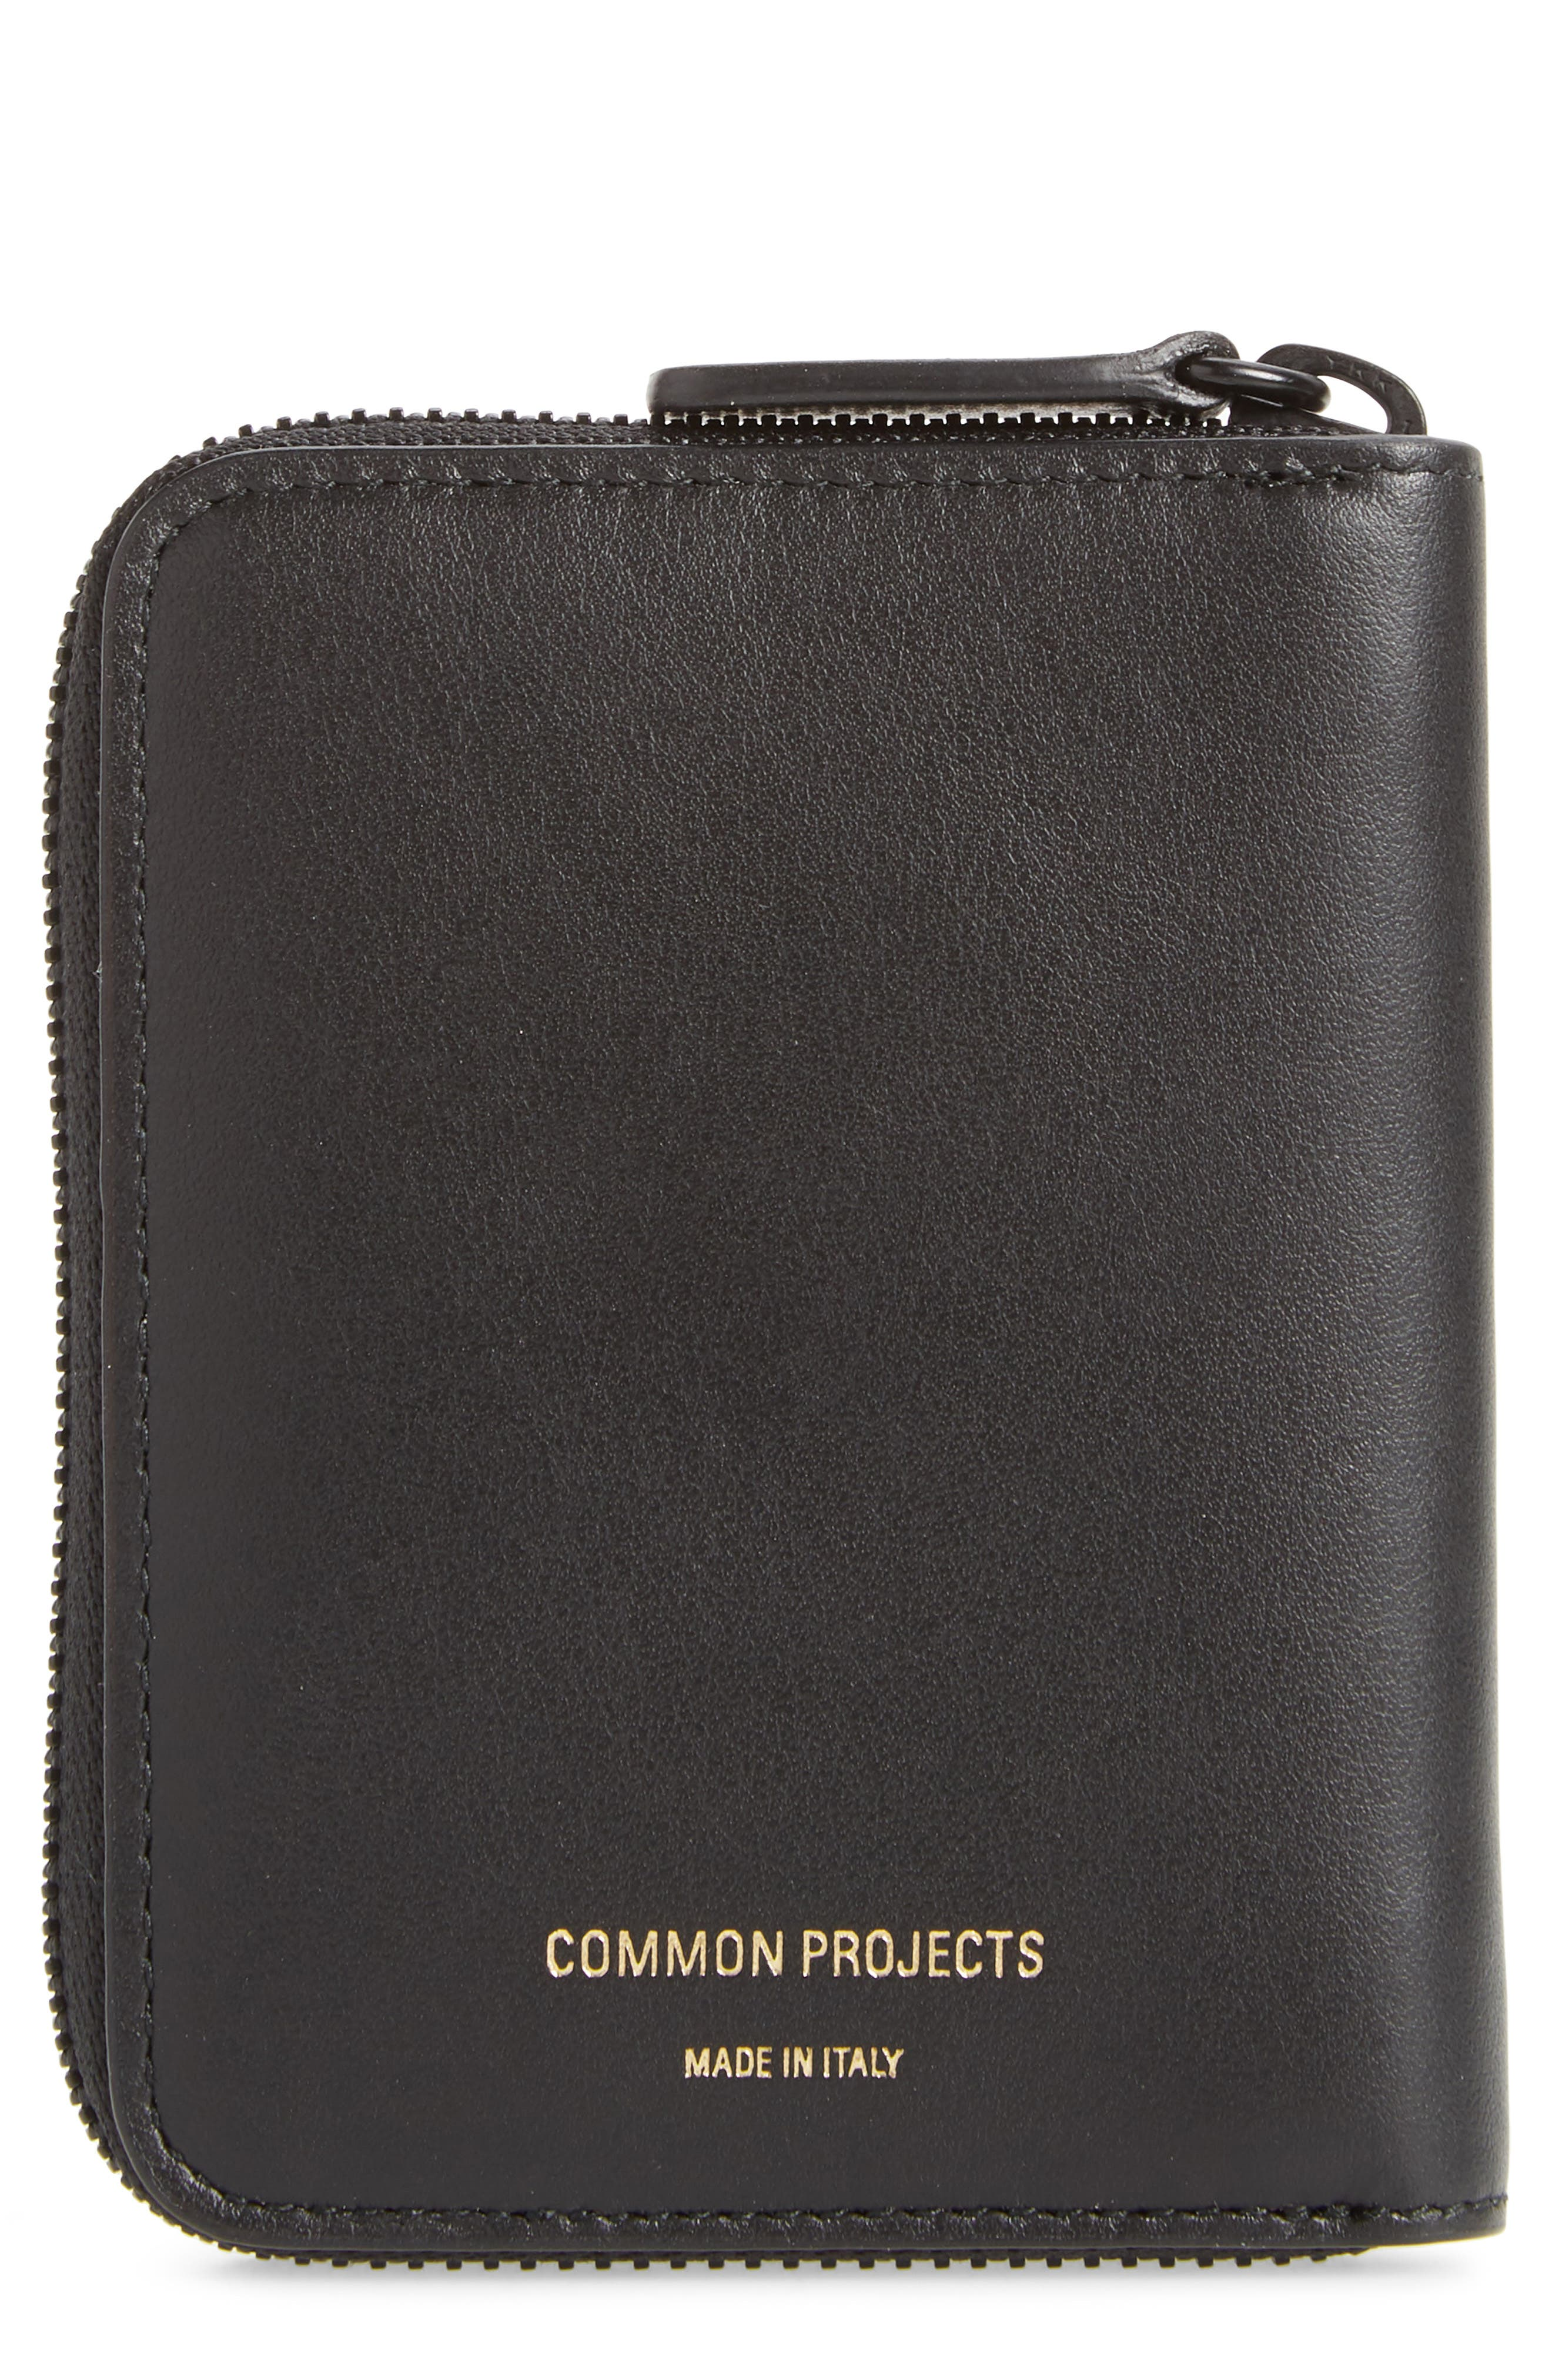 COMMON PROJECTS Leather Coin Case, Main, color, 001